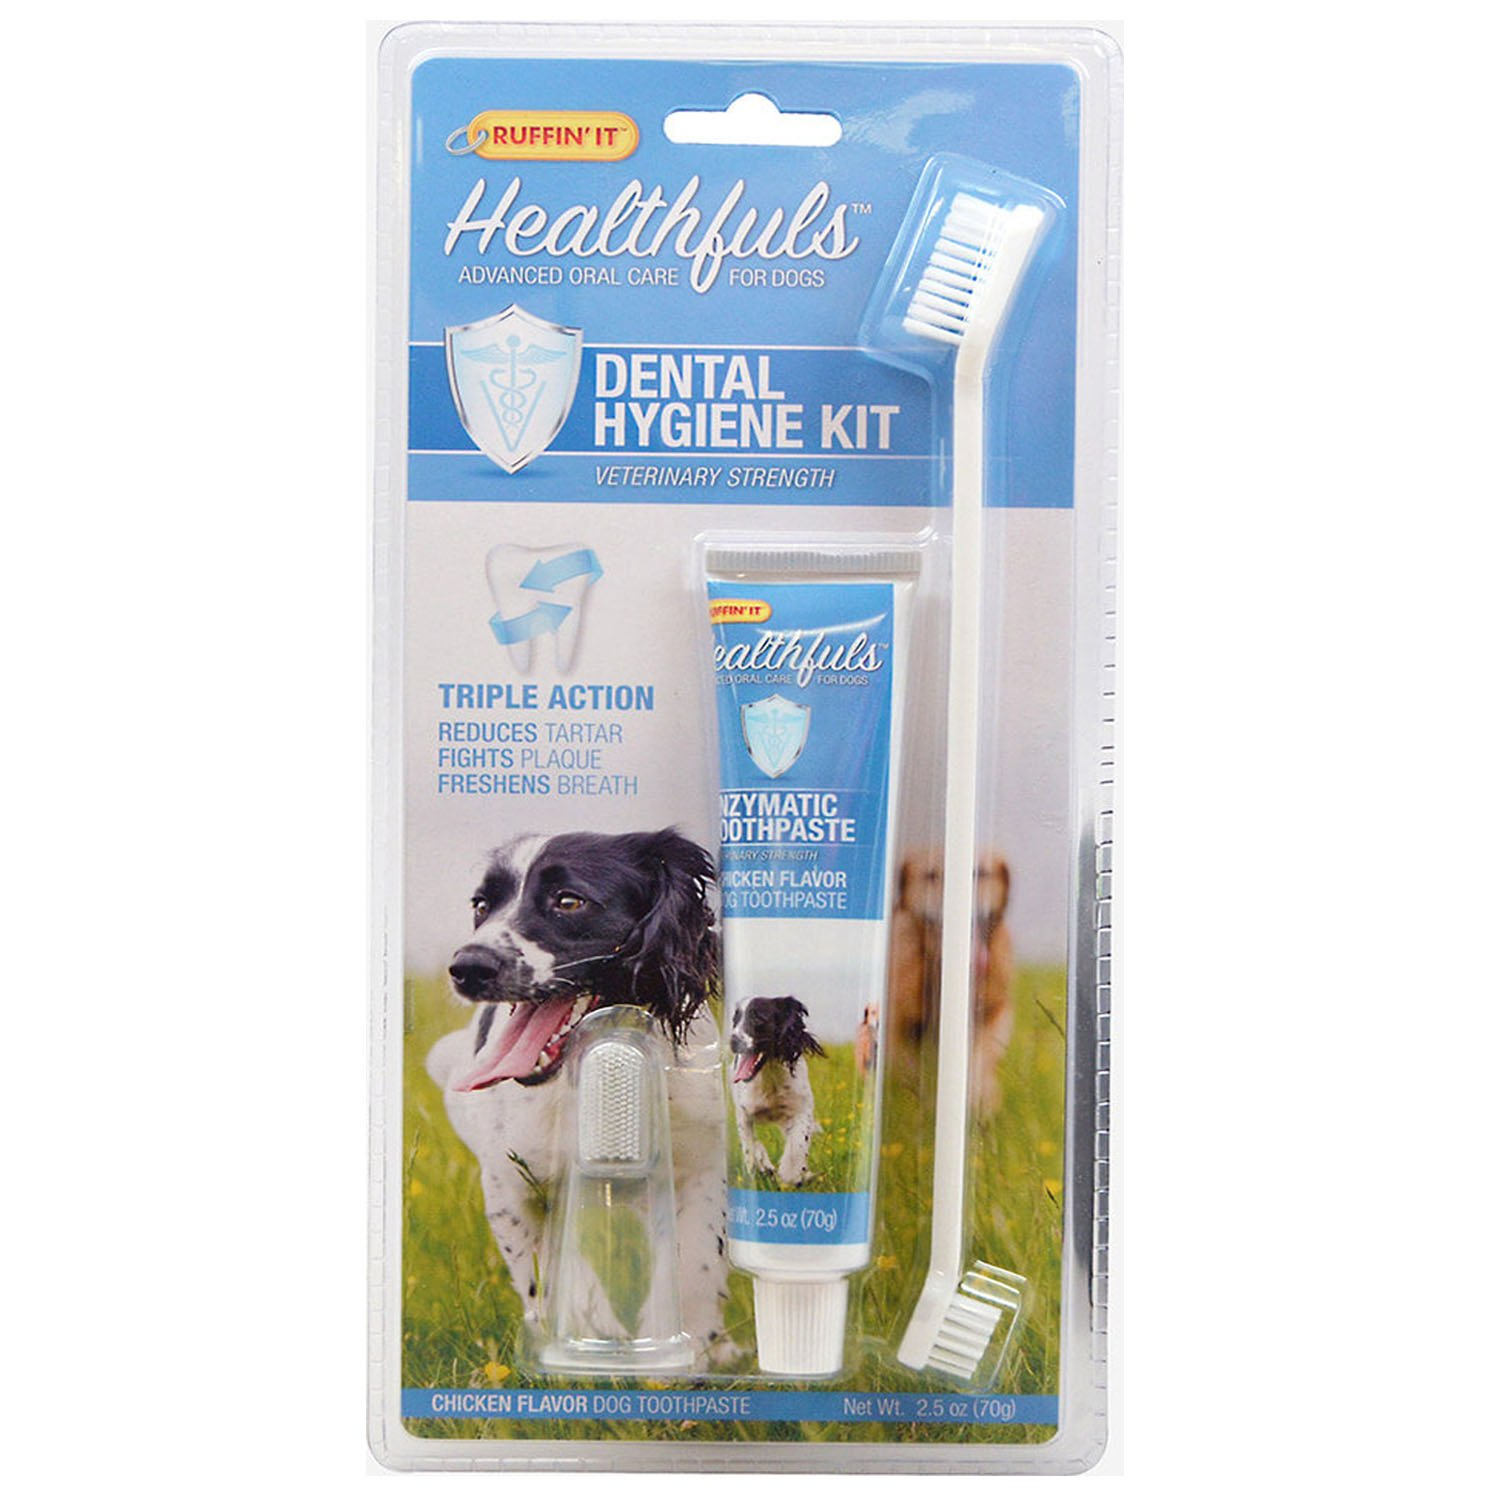 Enzymatic Toothpaste for Dogs Dental Kit Dog Toothpaste Toothbrush Fingerbrush for Freshen Breath